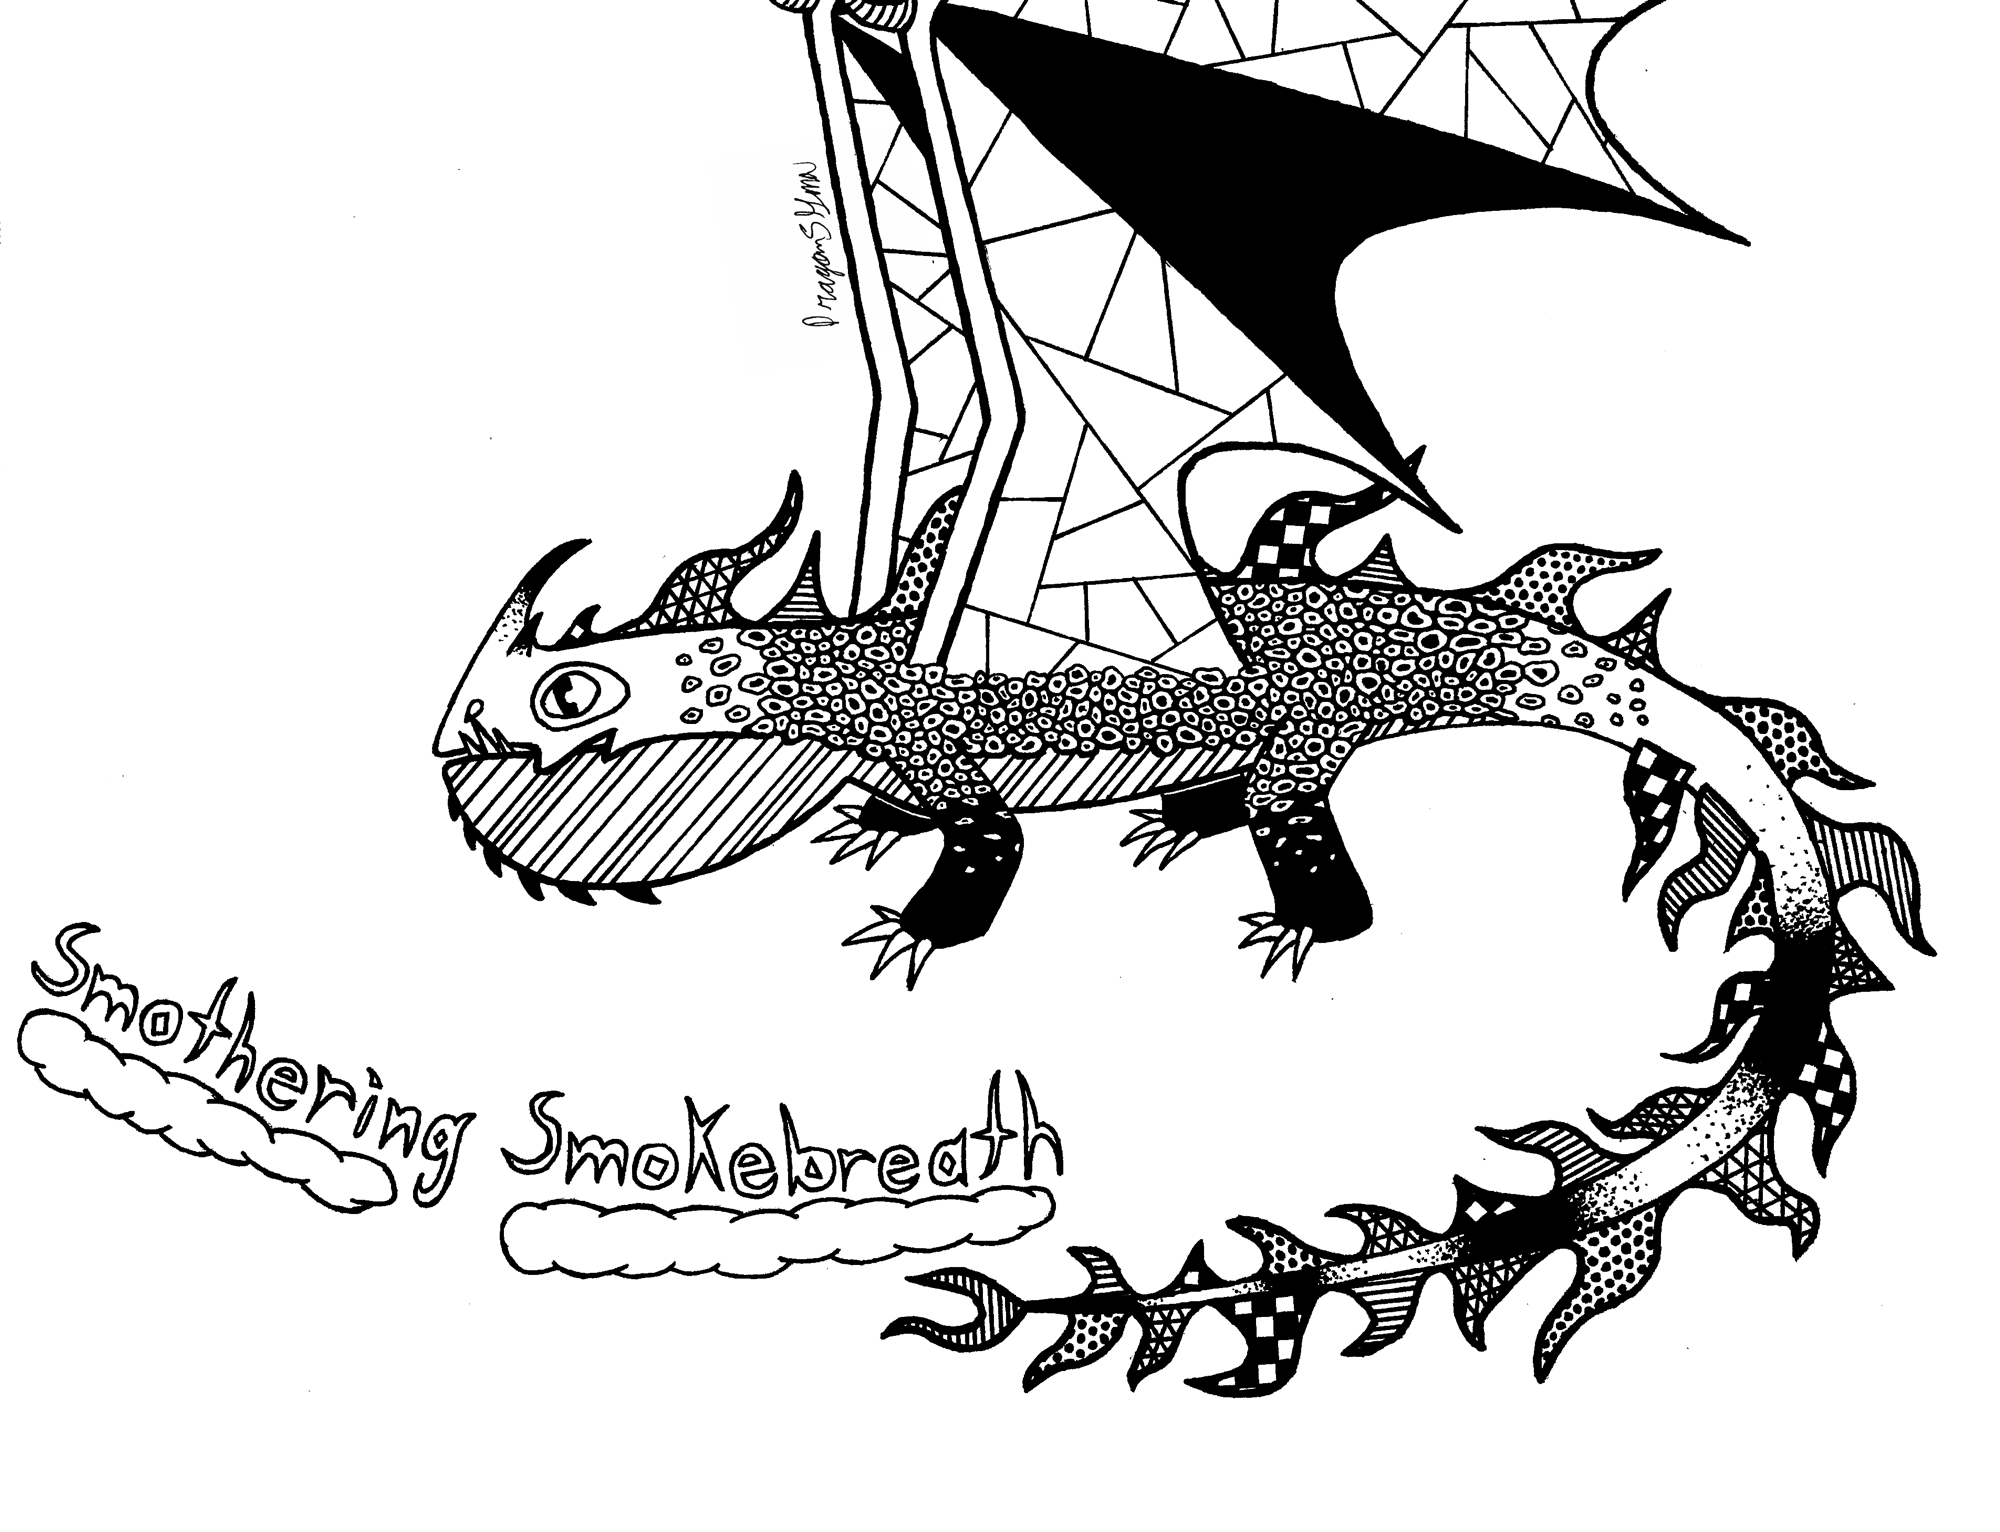 Smothering Smokebreath Zentangle (Open for Suggestions)